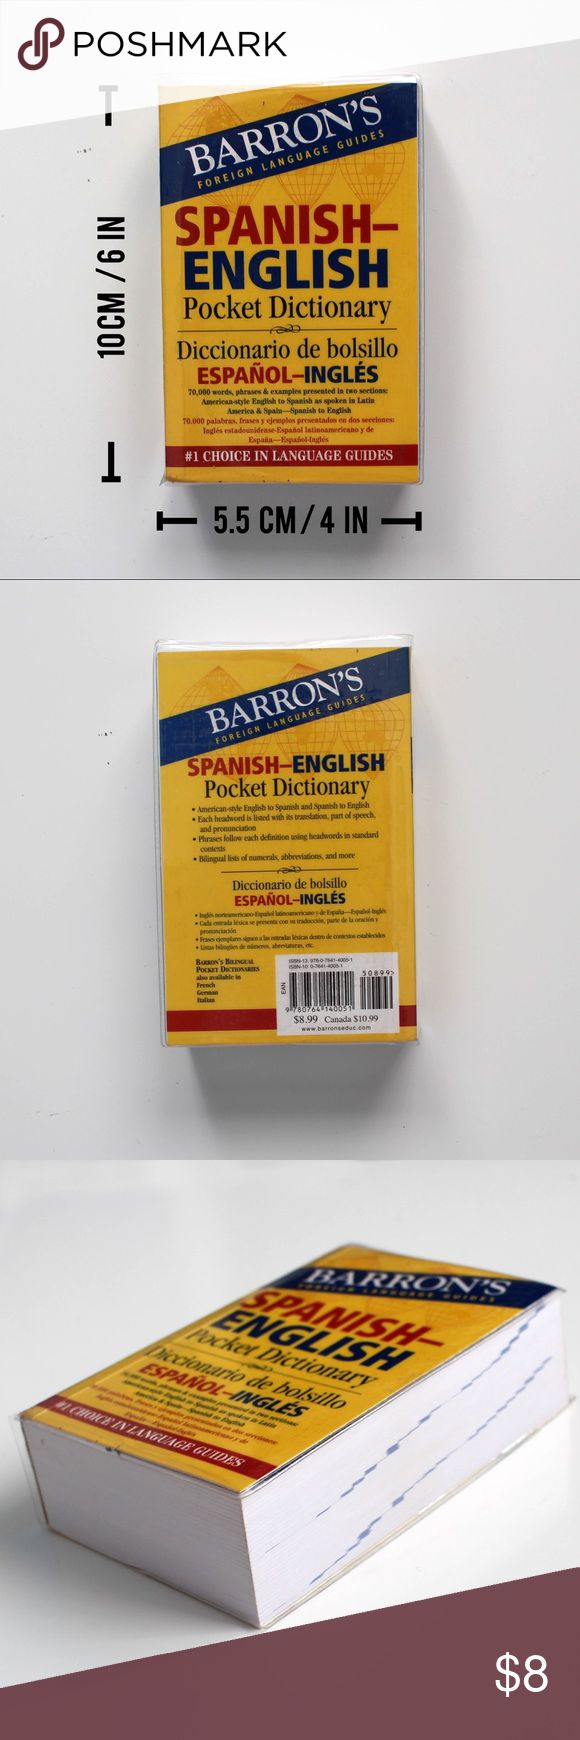 Barron's Spanish - English Pocket Dictionary 📕 CHEAPER ON MERCARI @simplymaci  📙 Great, easy to read, Spanish-English pocket dictionary!  📒 Must-have for any student hoping to become fluent in Spanish!  📗 Has a water-resistant plastic book cover which reduces the chance of stains and damage.   📘 The only evidence of use is whiteout on the inside of the front cover, but other than that, it is untouched as shown by the appearance of the pages in the fourth picture. Barron's Other